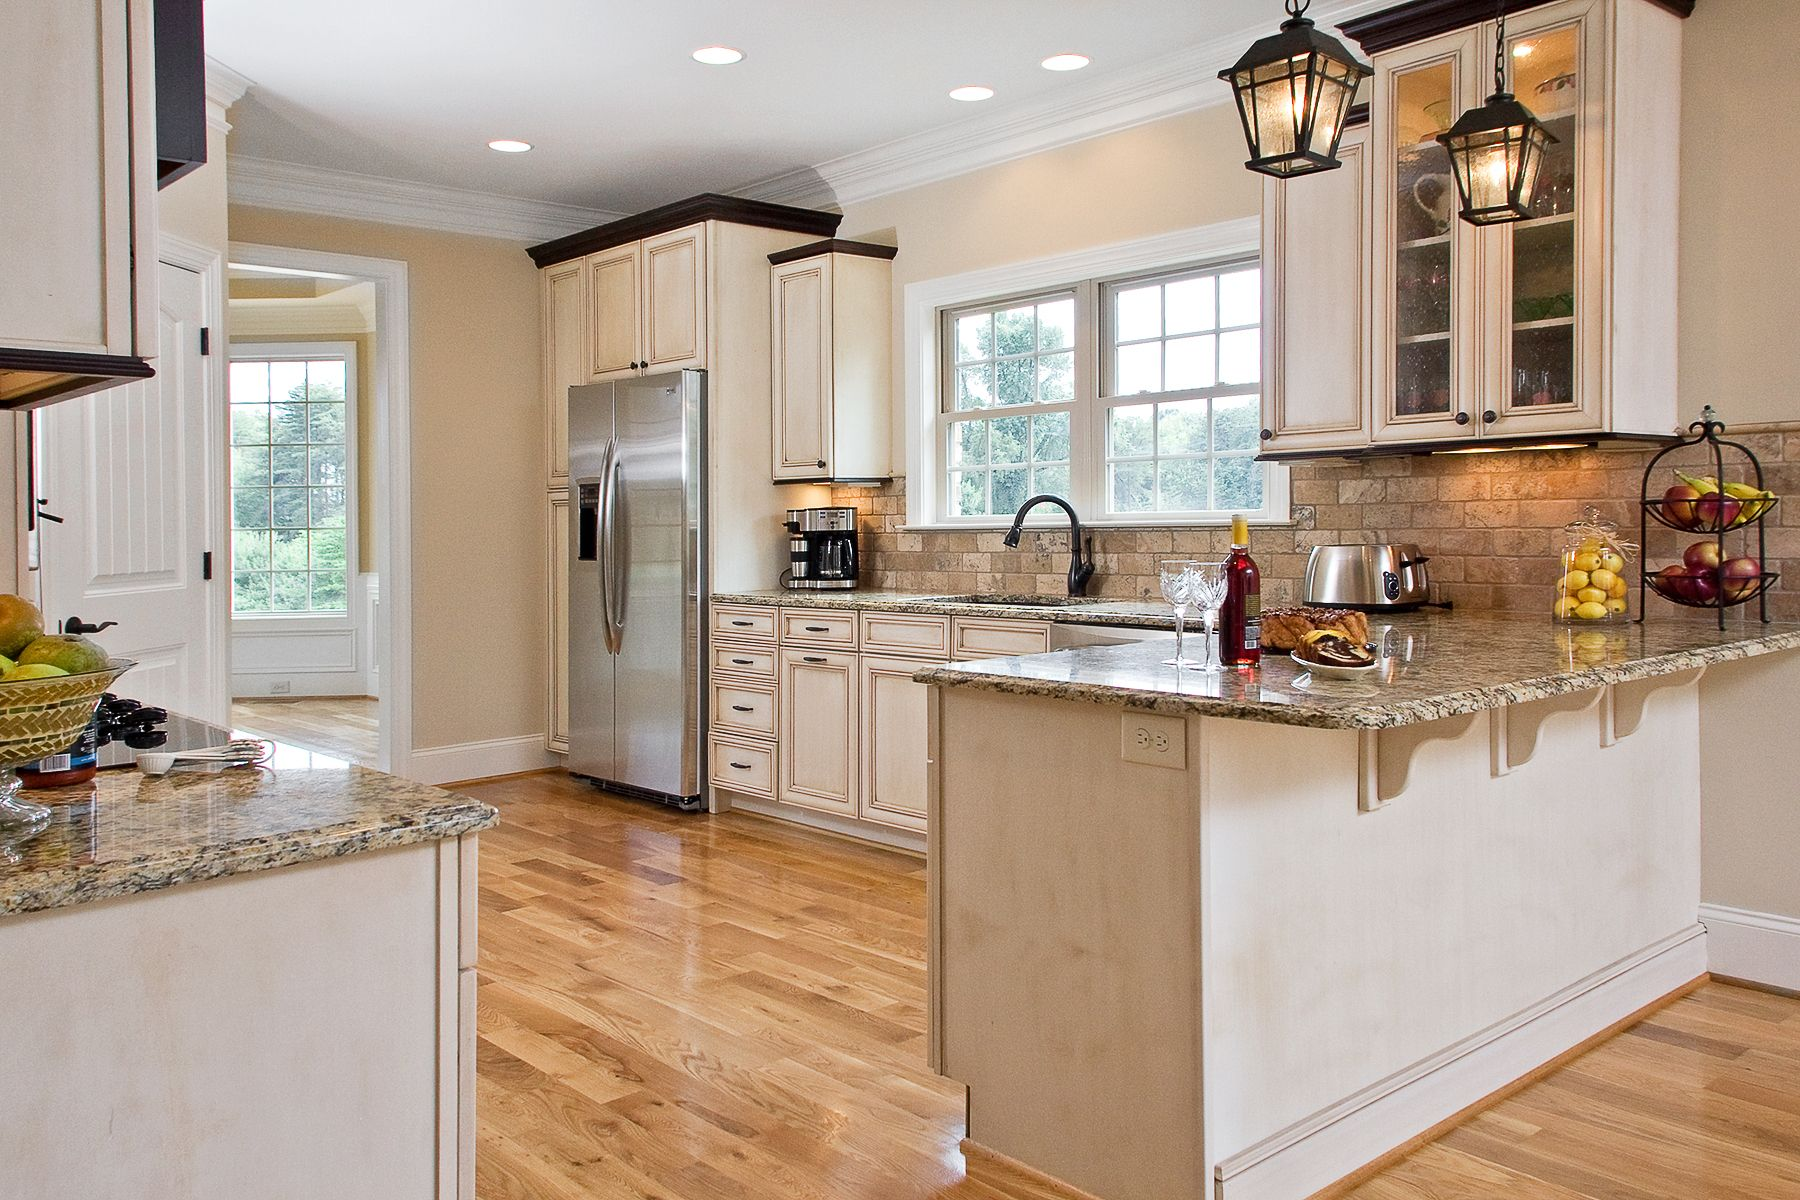 New kitchen kitchen design newconstruction new for Kitchen remodel trends